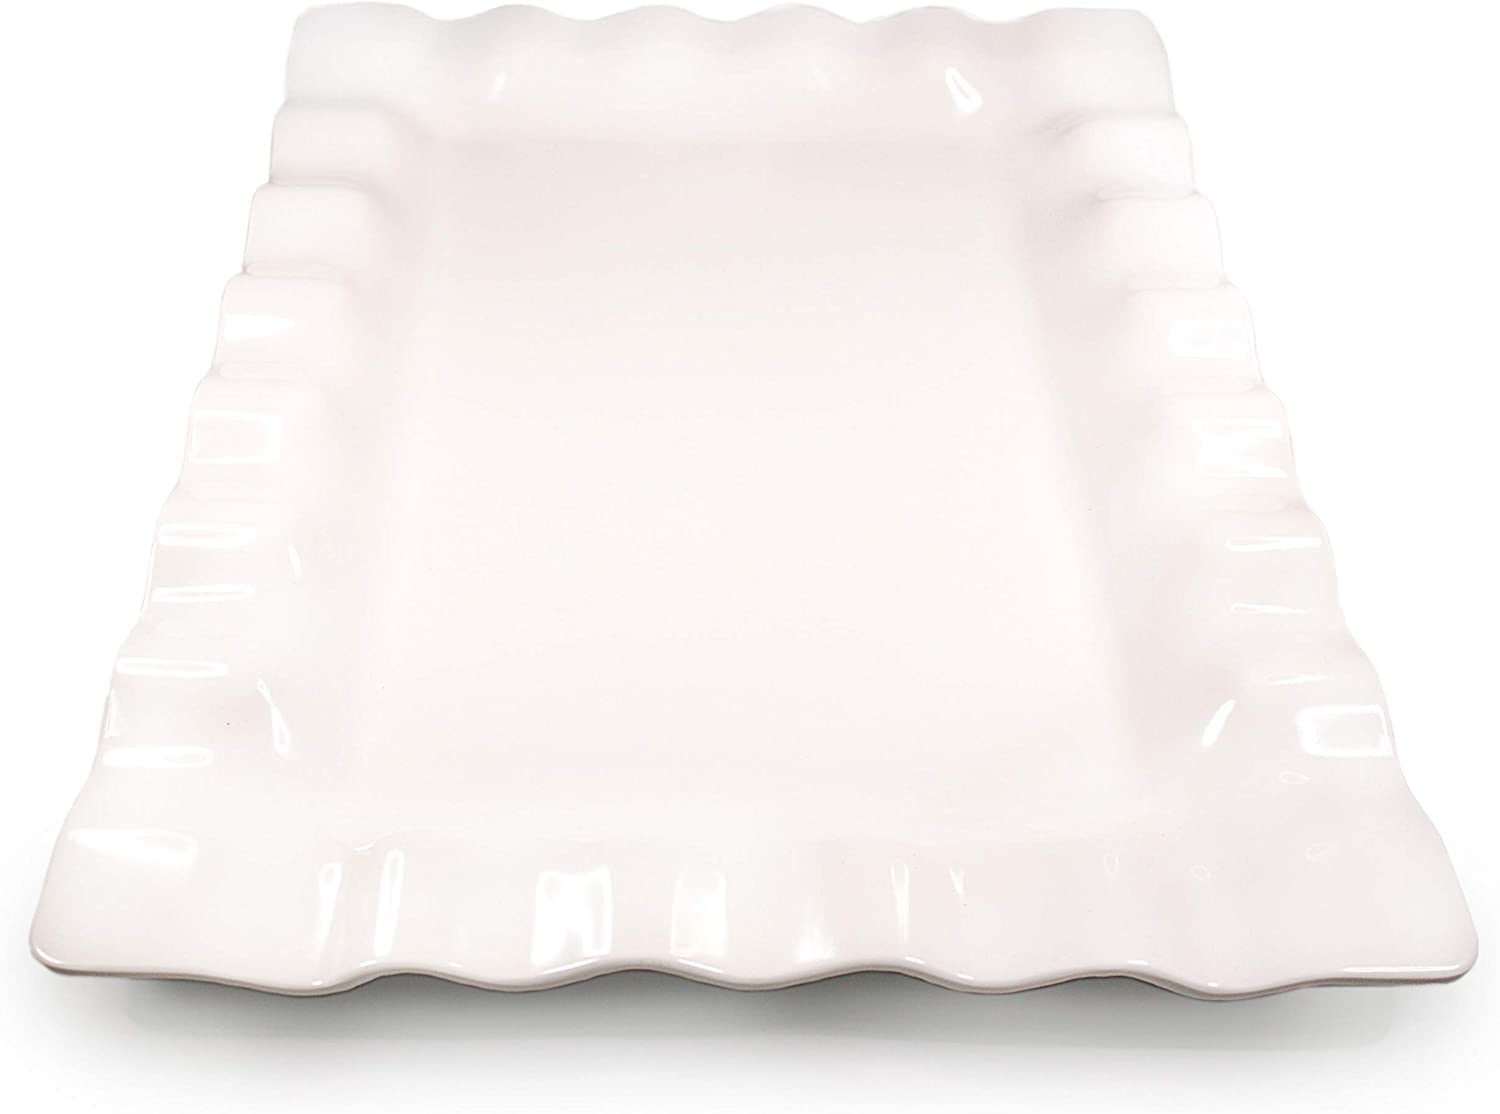 "White Melamine Scalloped Serving Platter - Beautiful but Safe Turkey Platter Serving Tray - White Rectangle Platter - Shatterproof and Safe for Dishwasher and Microwave - 19"" x 14 1/4"""